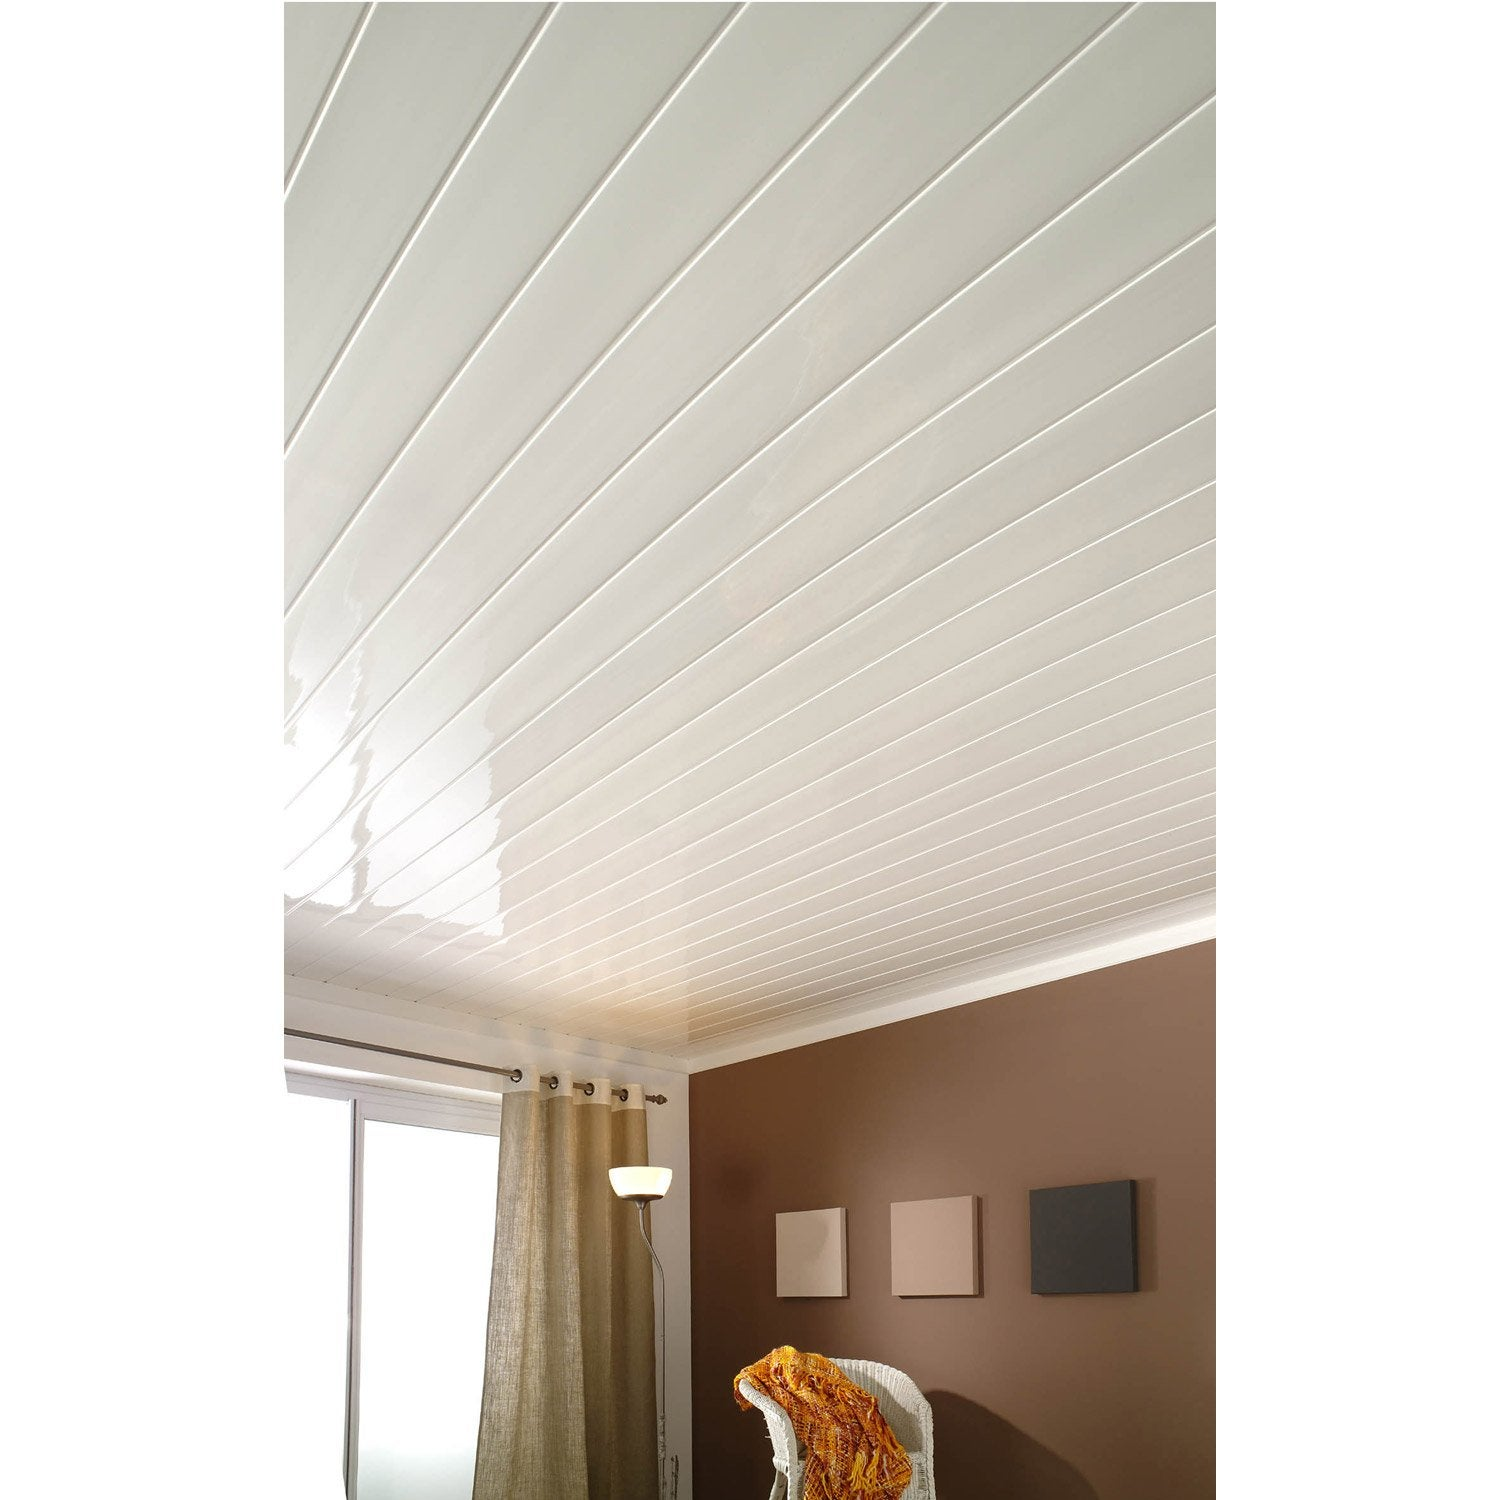 Lambris pvc blanc brillant - Lambris pvc blanc brillant pour plafond ...